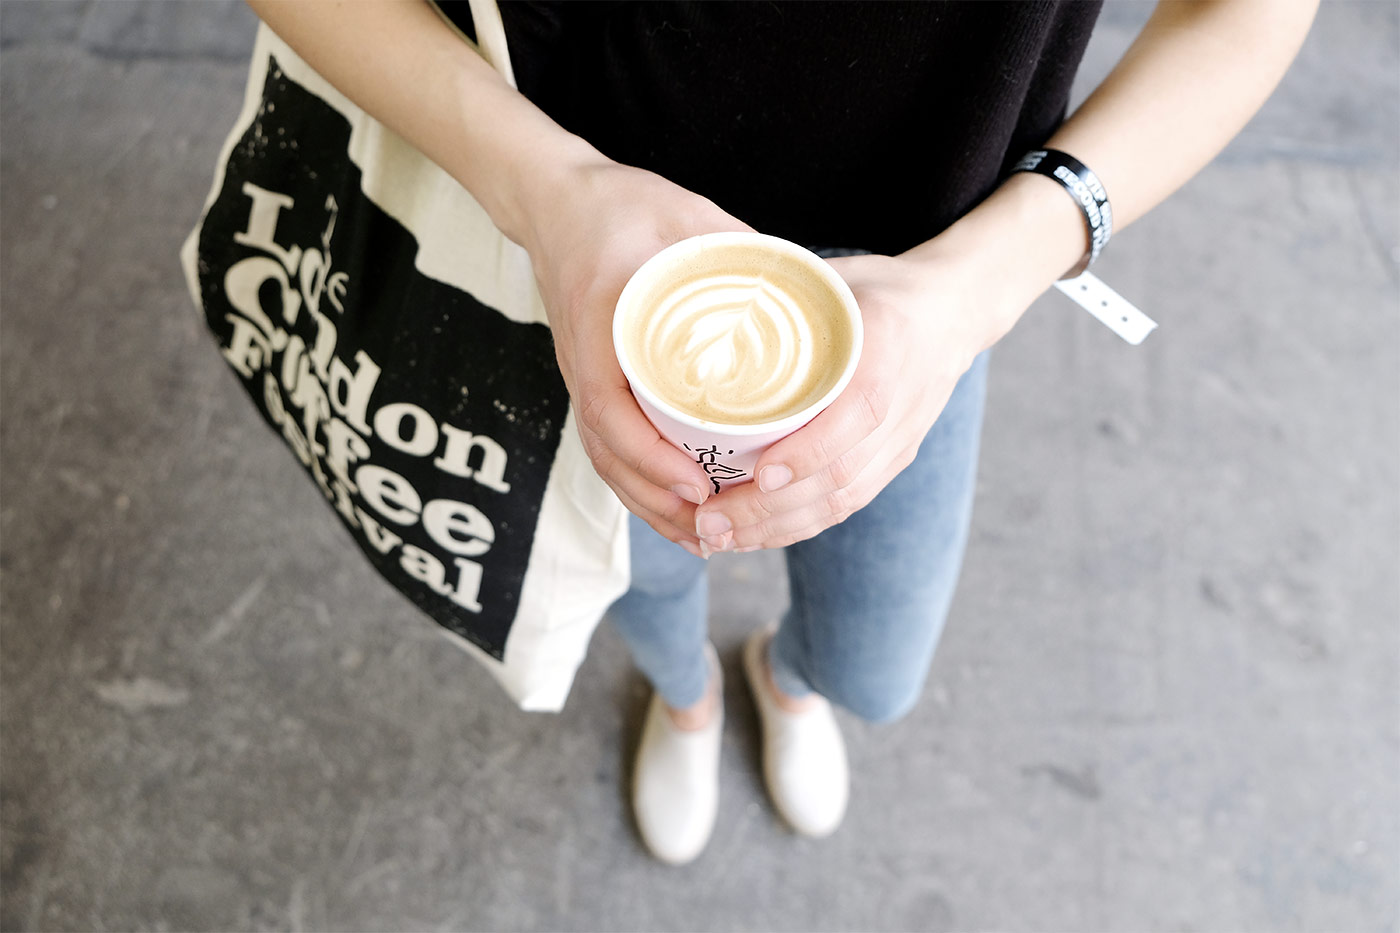 Kaffee-Events, Festival und Kalender: The London Coffee Festival. CafCaf – Kaffee & Blog, Kaffeeblog